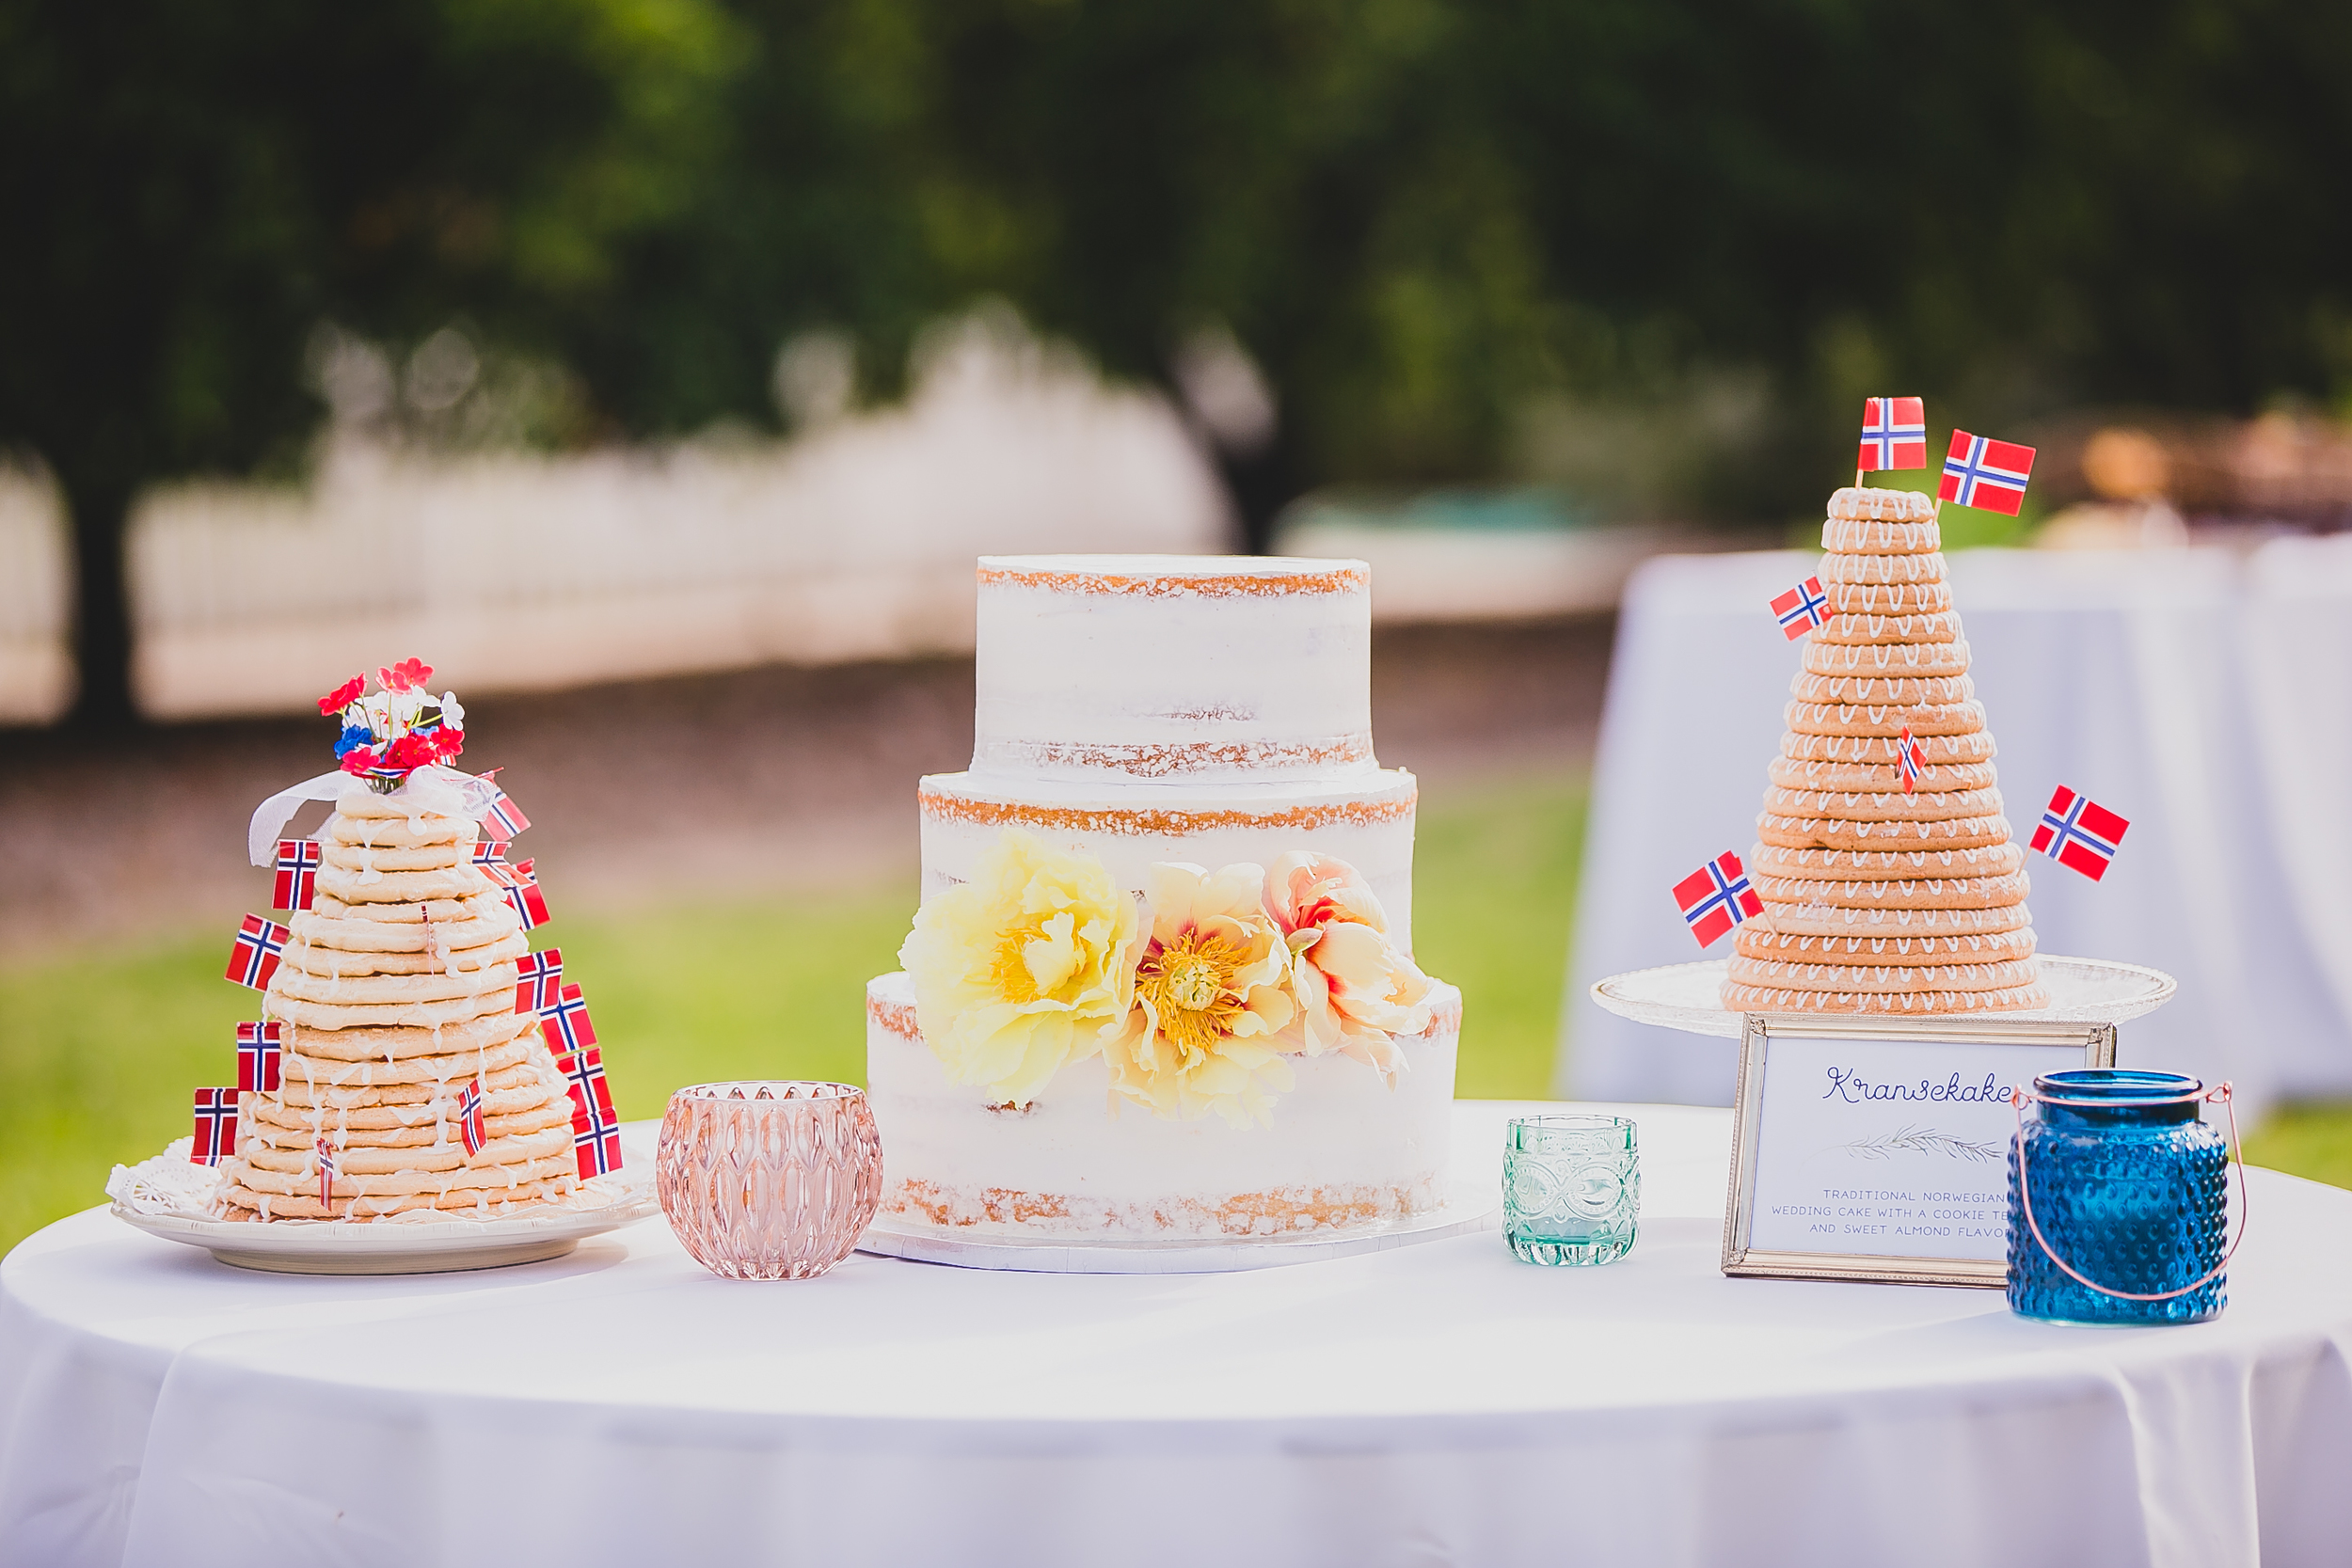 In addition to our naked wedding cake we also had traditional Norwegian  Kransekake  cakes. One came straight from Norway and the other was handmade by a family friend.